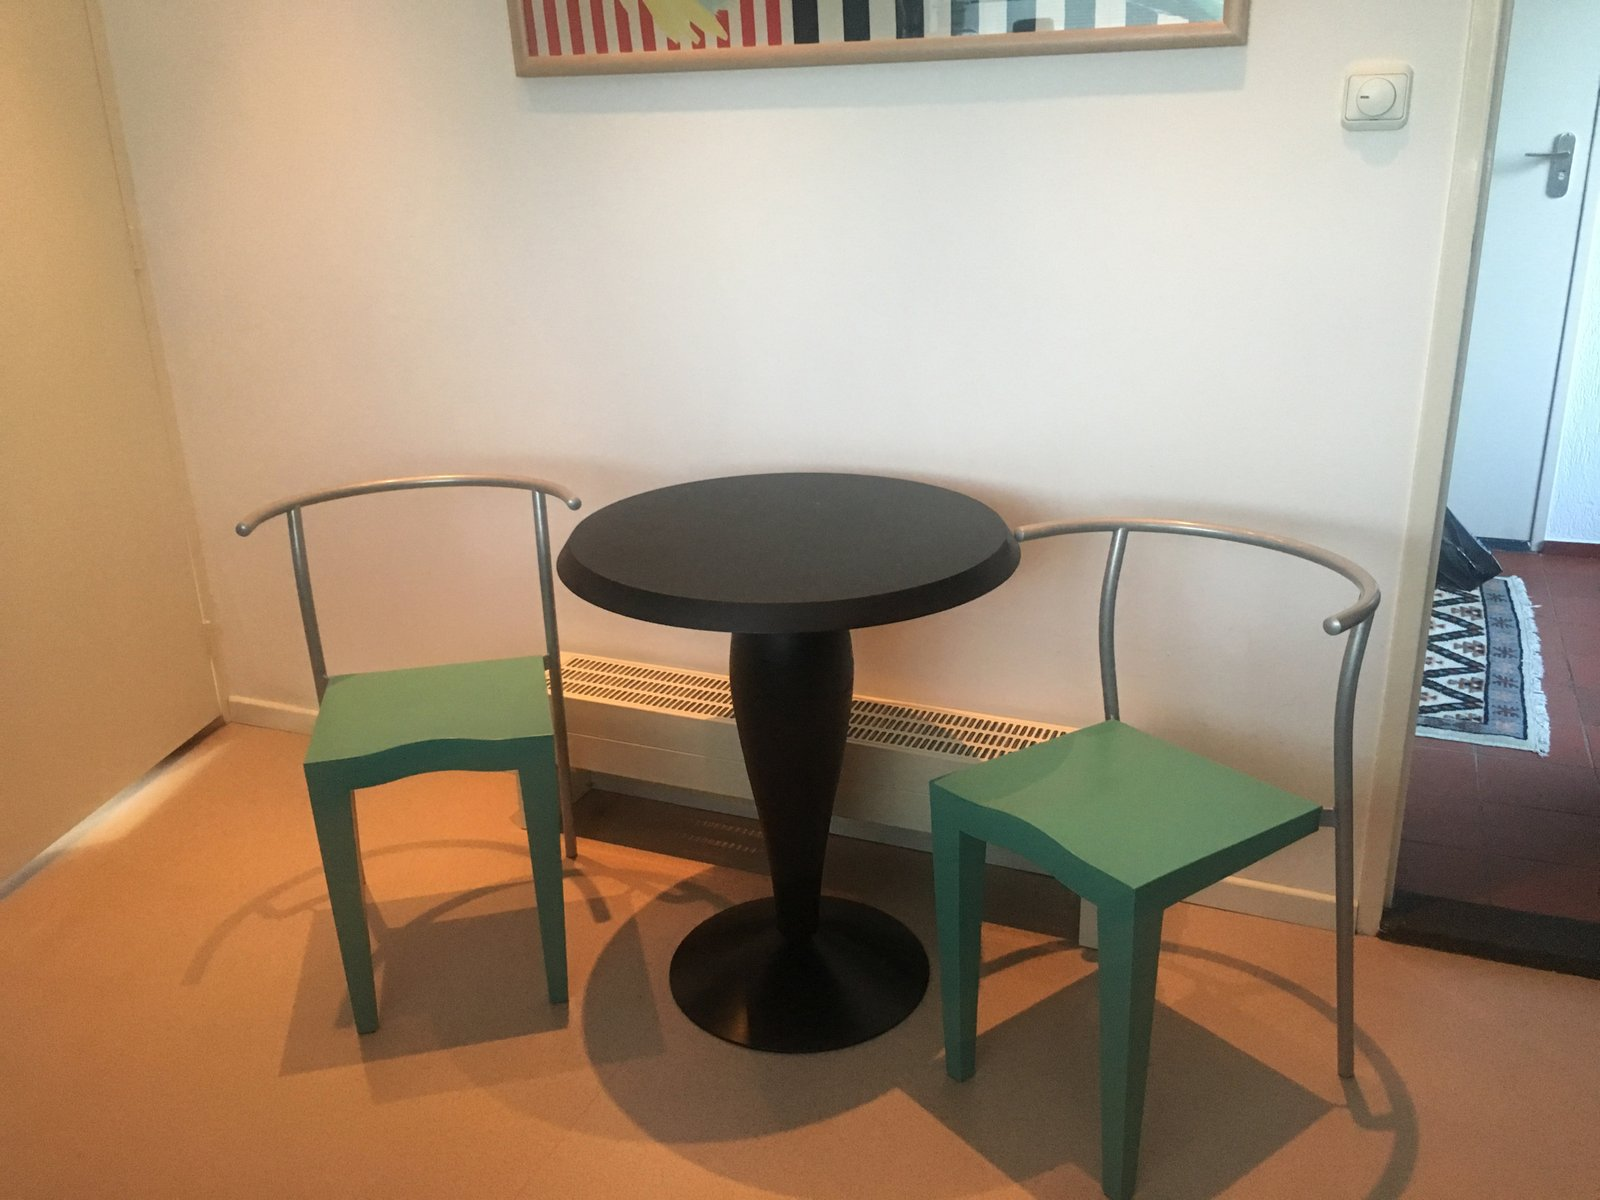 Vintage dining set by philippe starck for kartell 1980s for Deco kartell